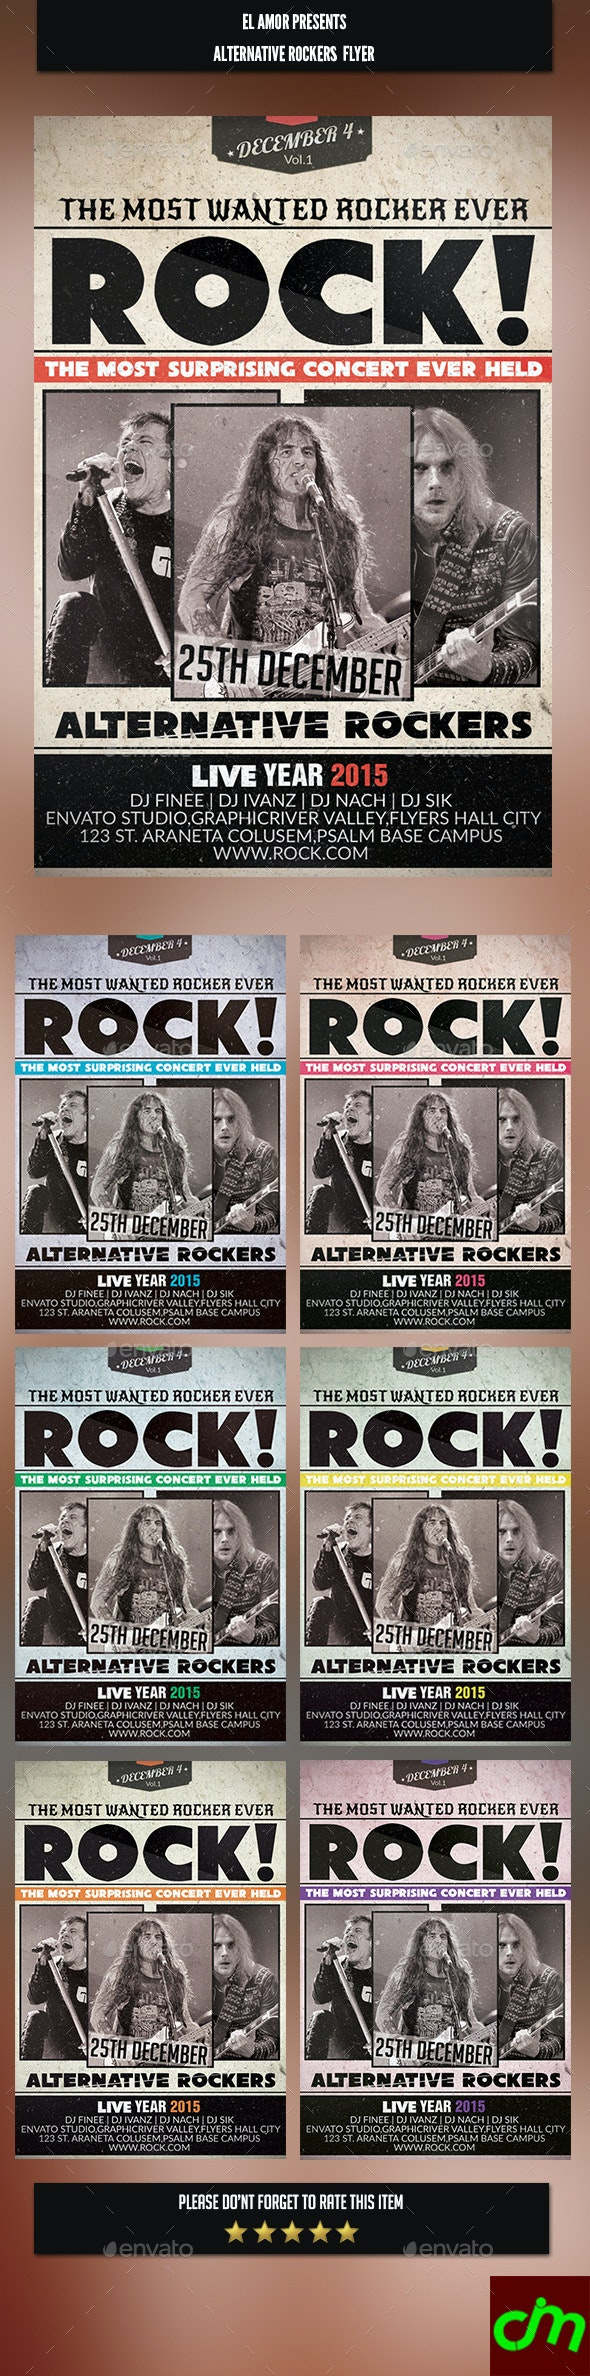 Alternative Rockers Flyer - Concerts Events